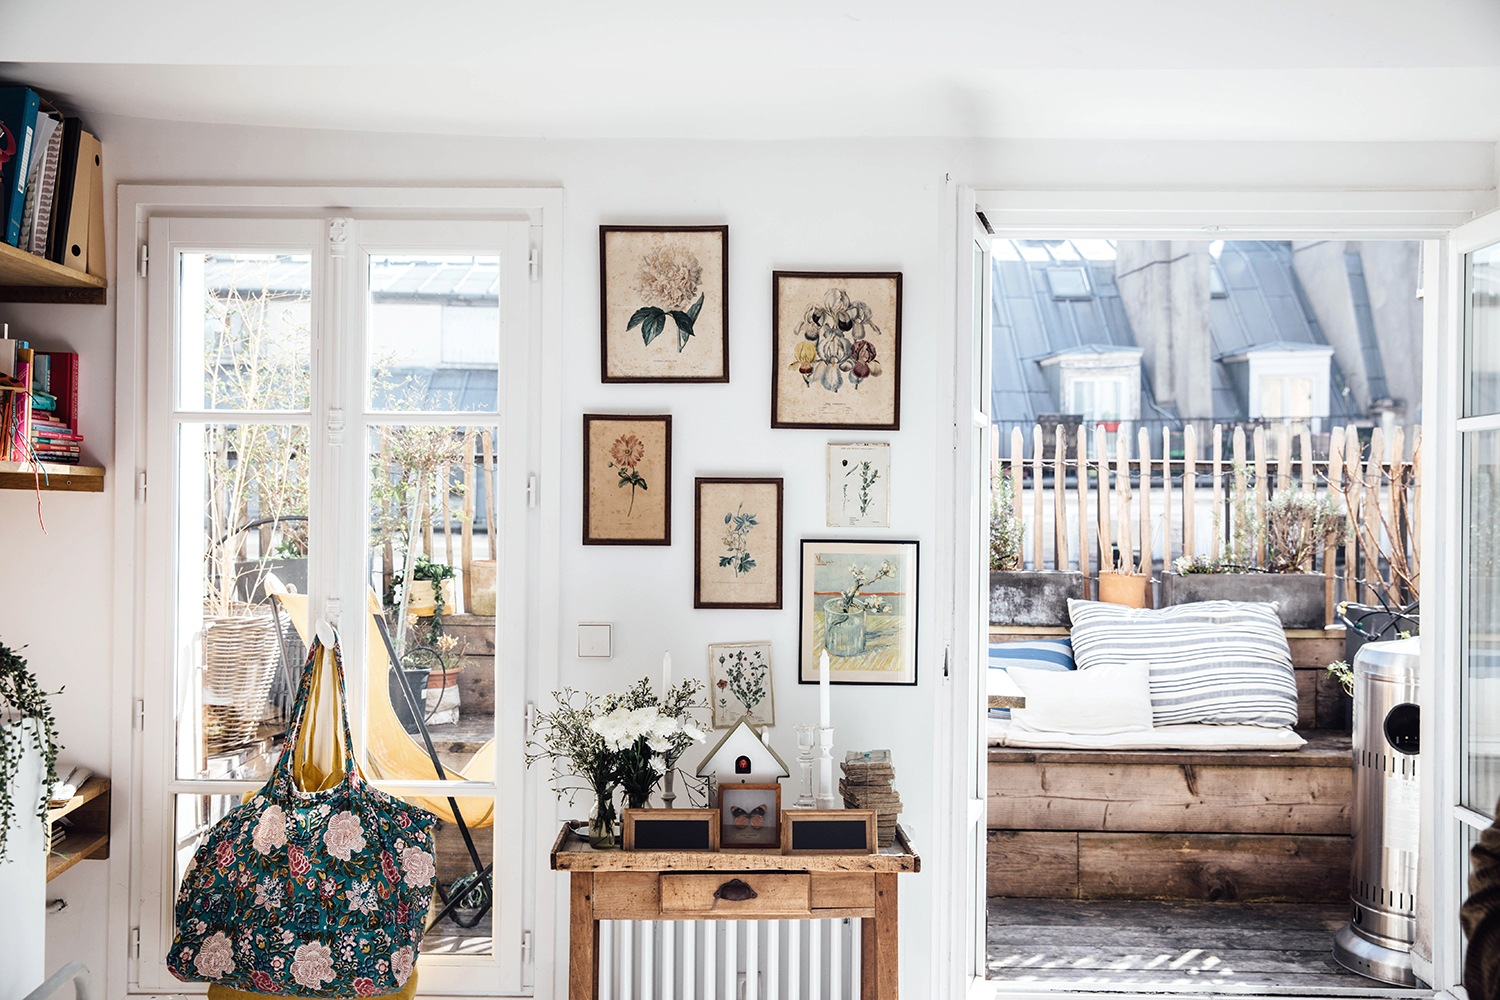 Home Tour Zoe de Las Cases Paris 35